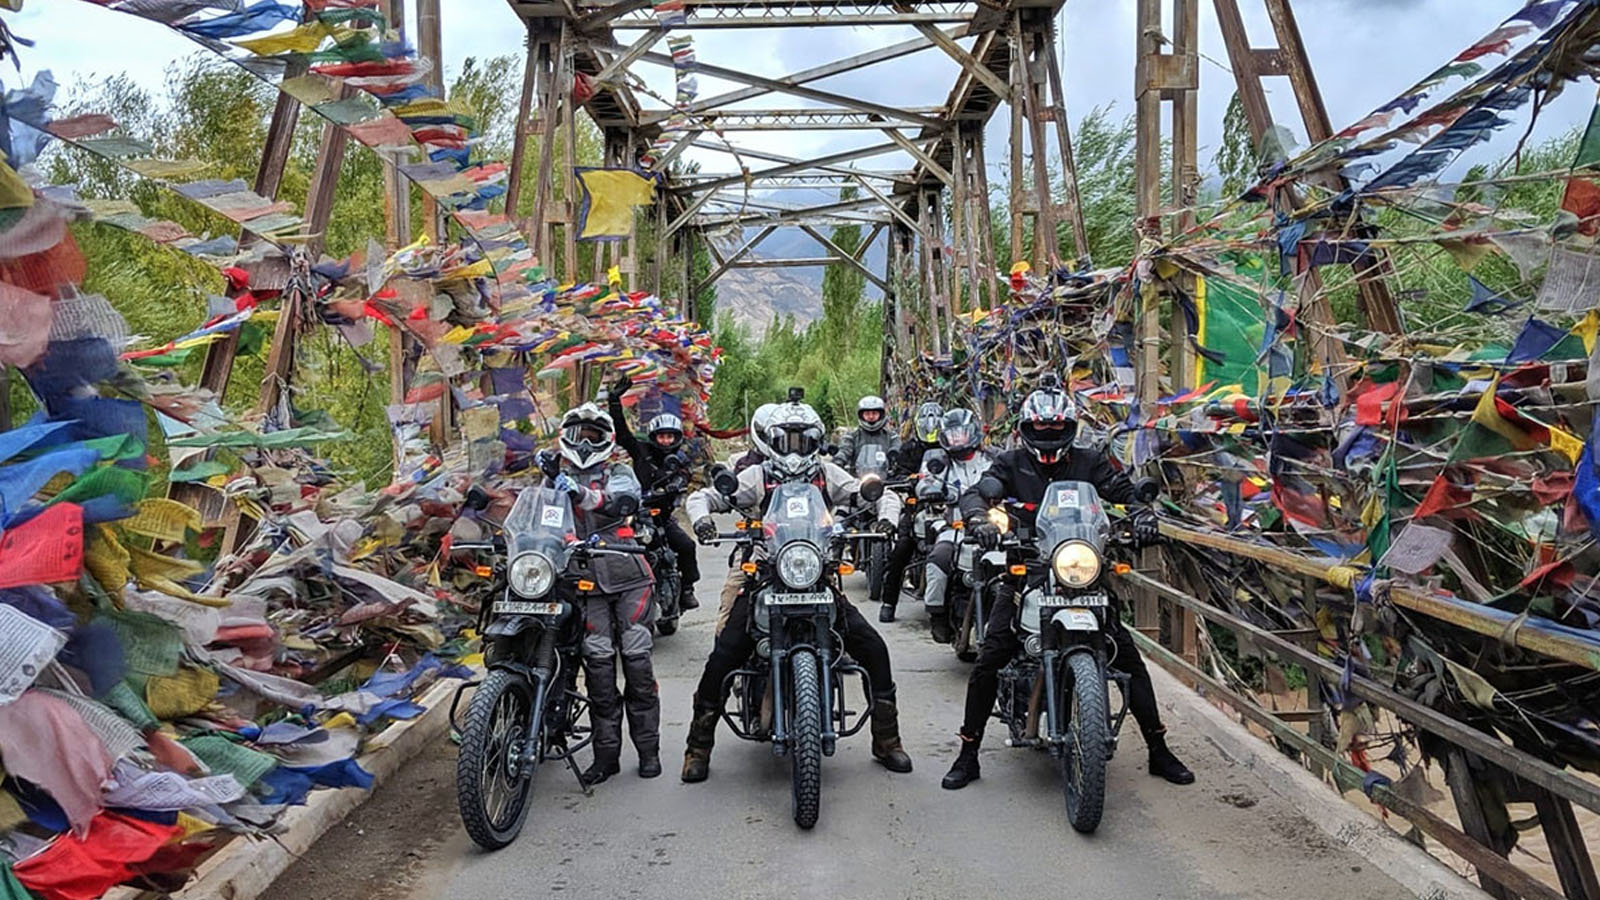 Adventure Motorcycle Tours: Choosing Your Next Trip